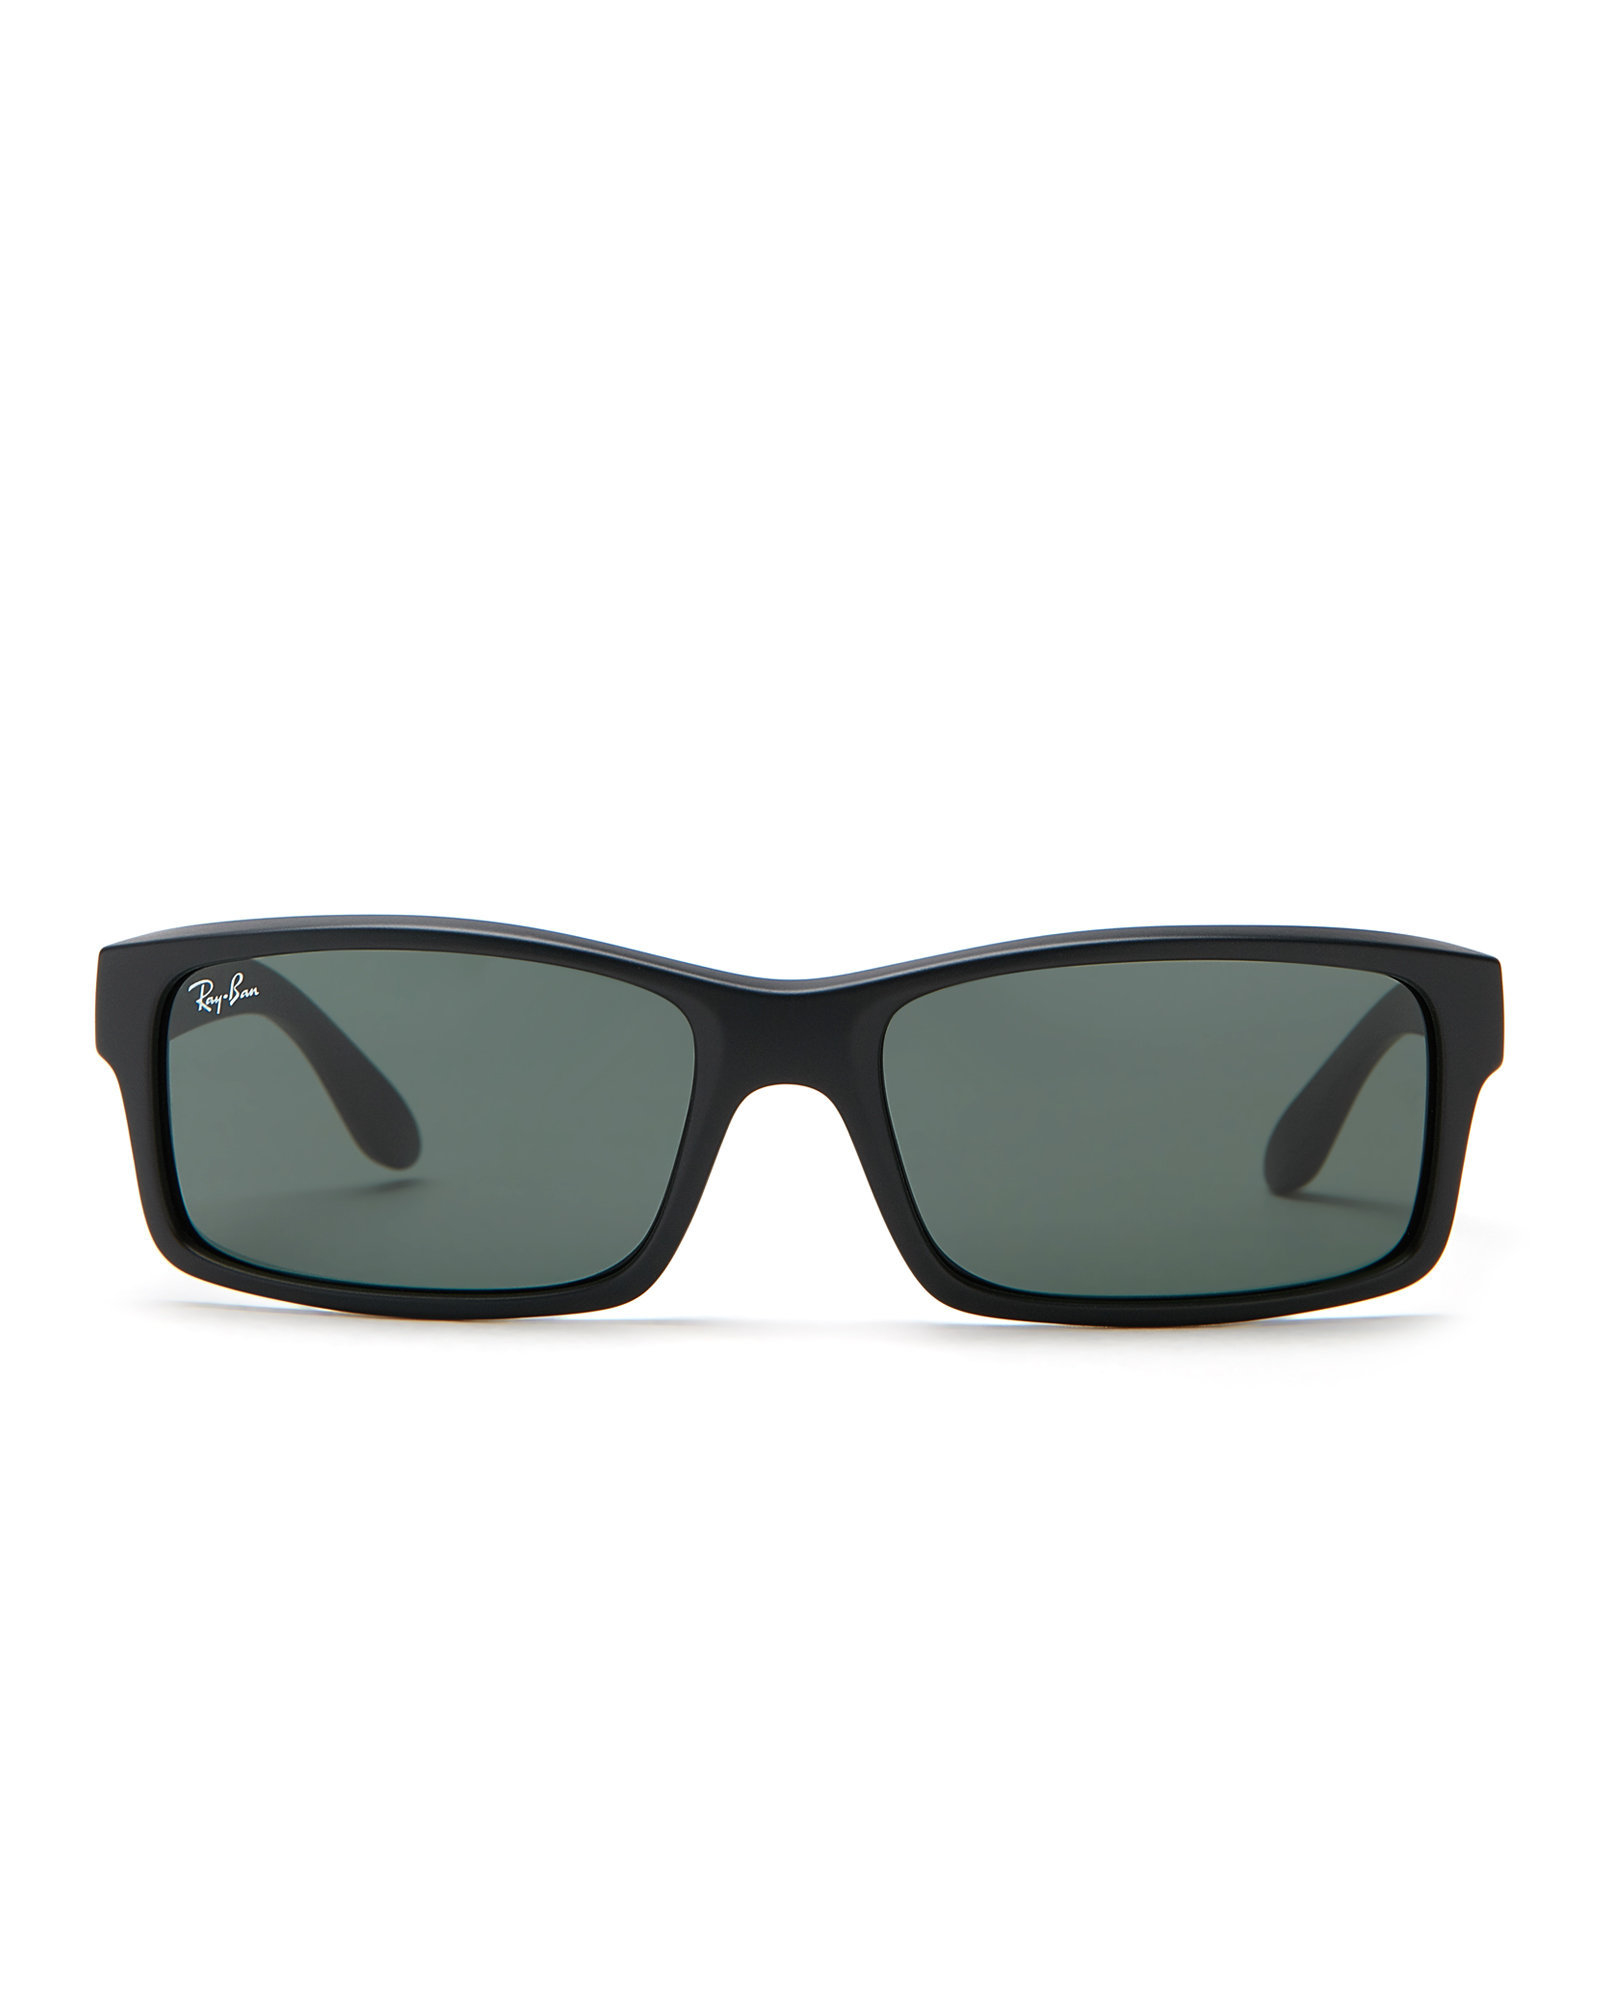 759e9ff100e Rb4151 Ray Ban Sunglasses « One More Soul